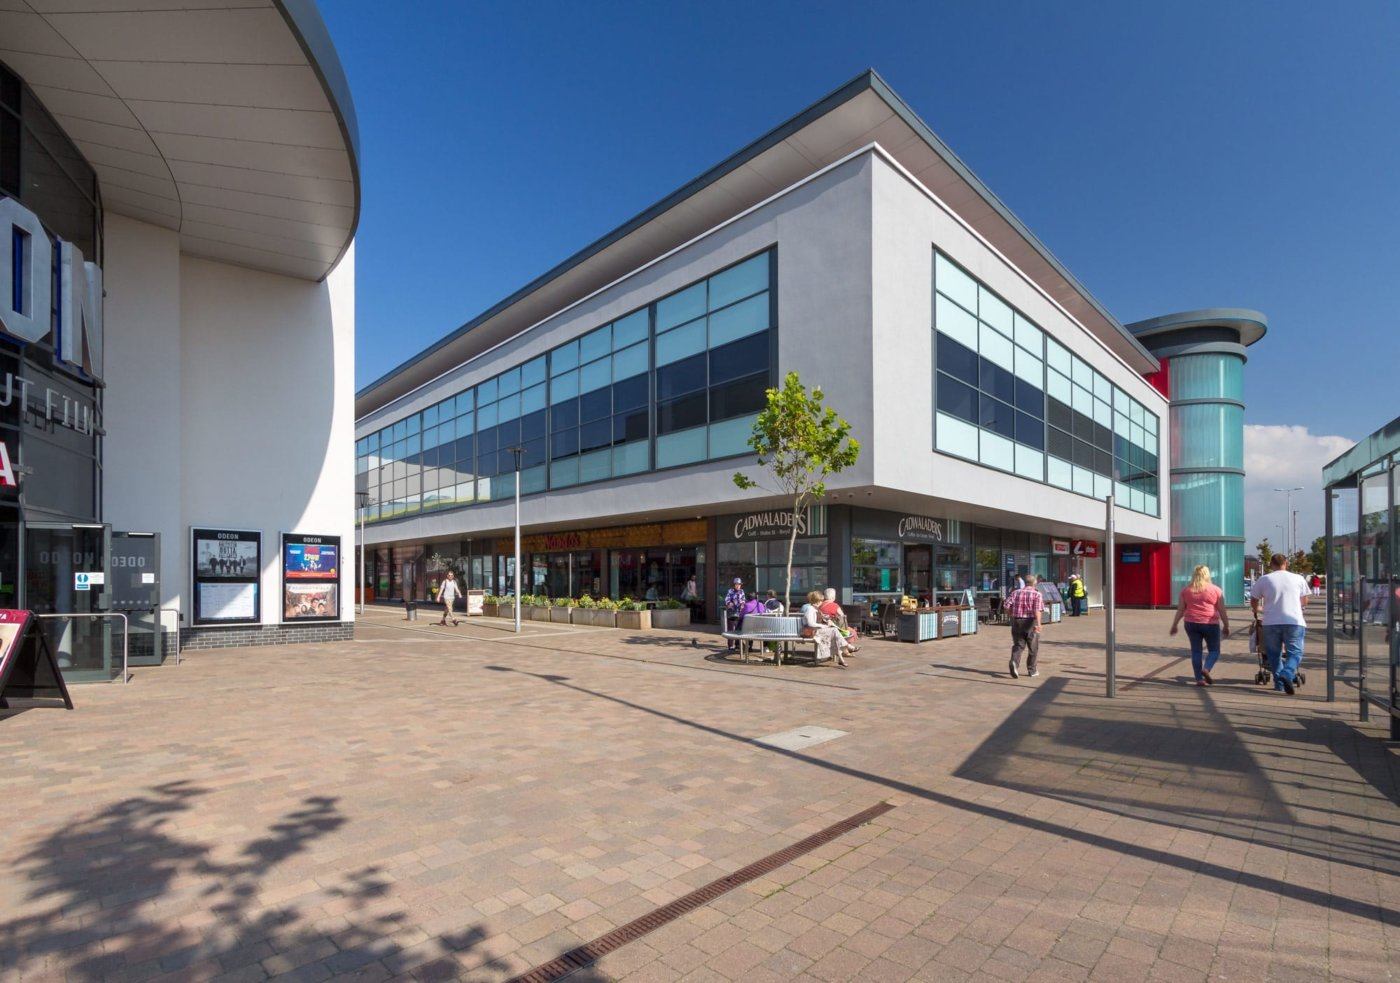 The Eastgate Centre